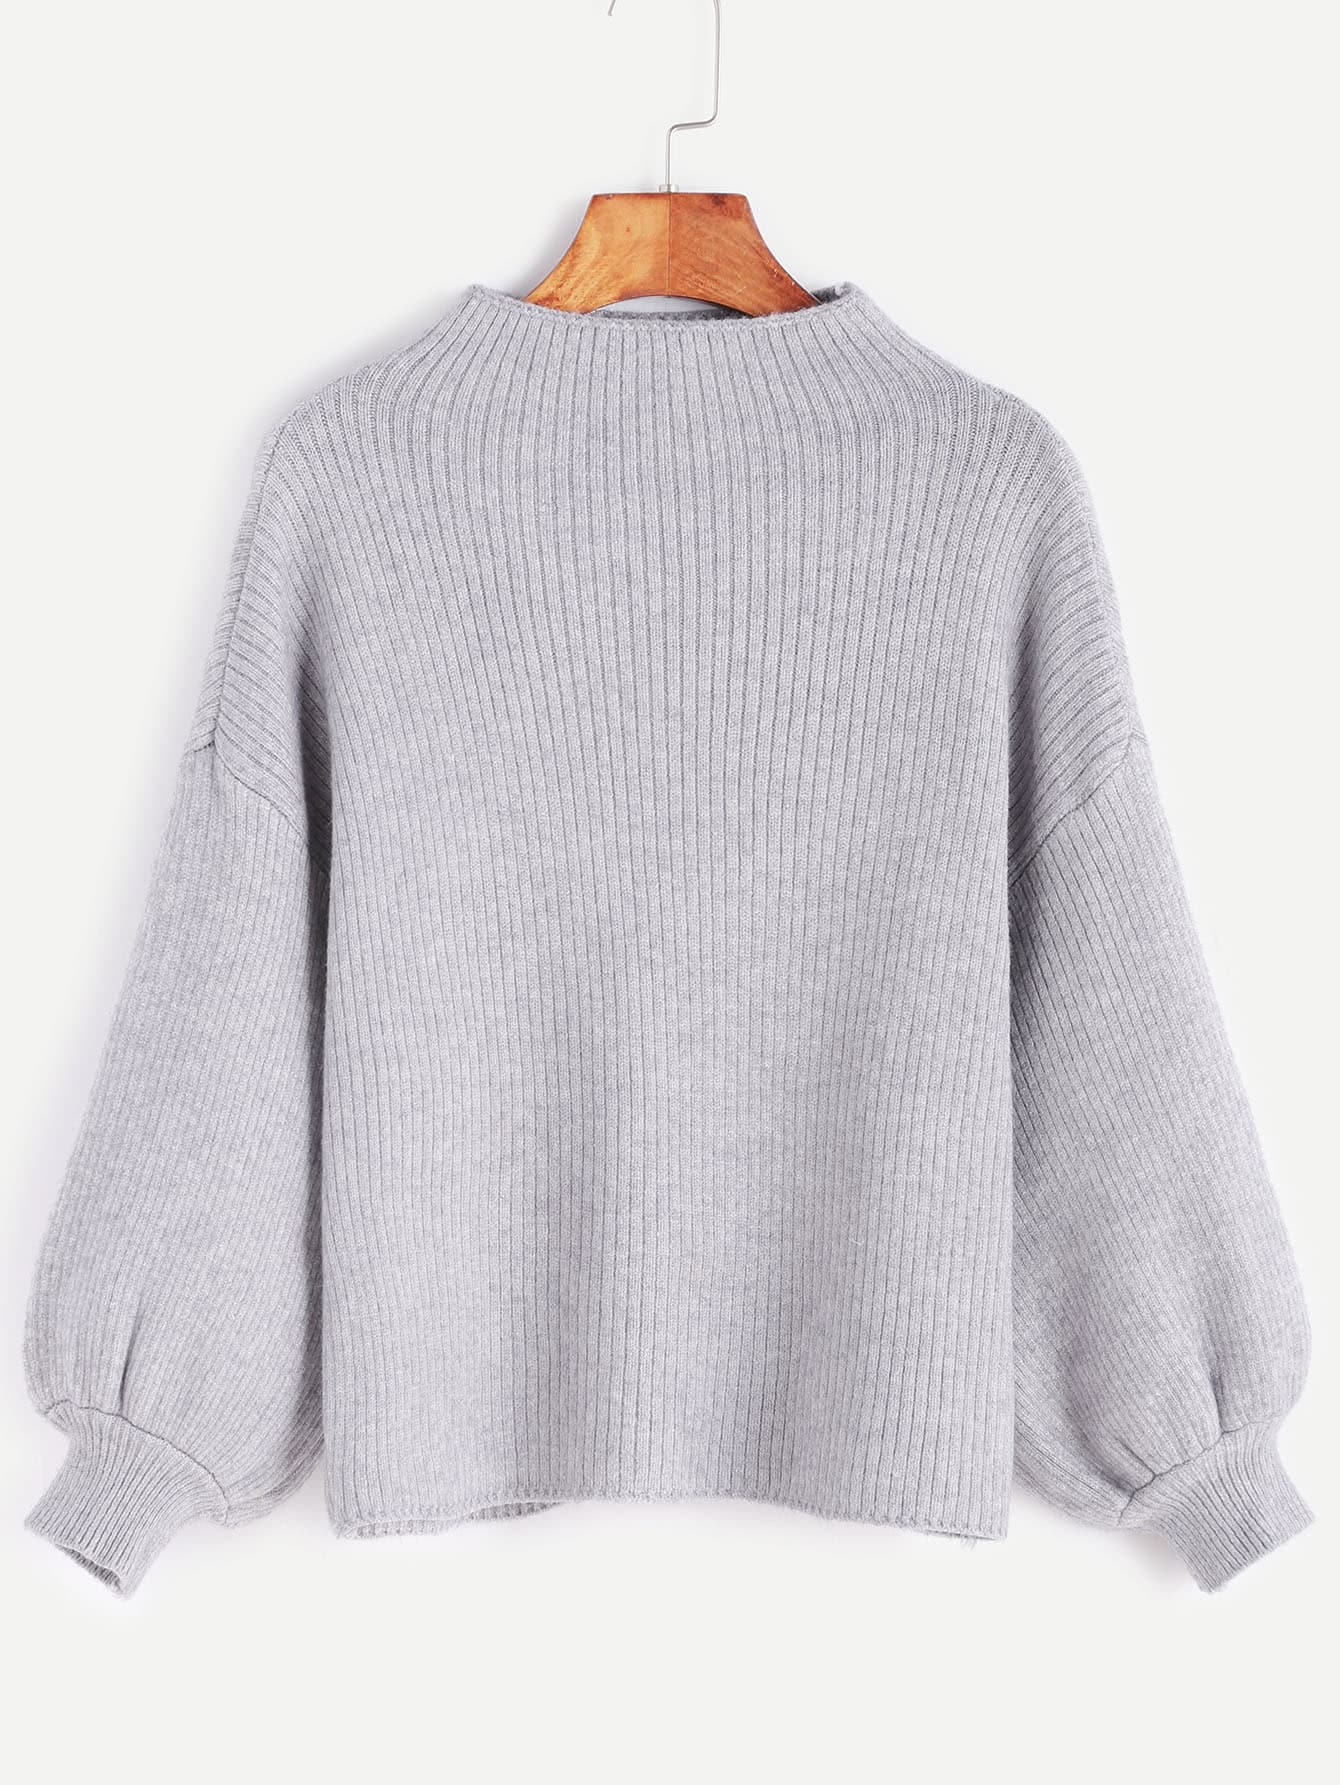 Grey Drop Shoulder Lantern Sleeve Ribbed Sweater sweater161109101